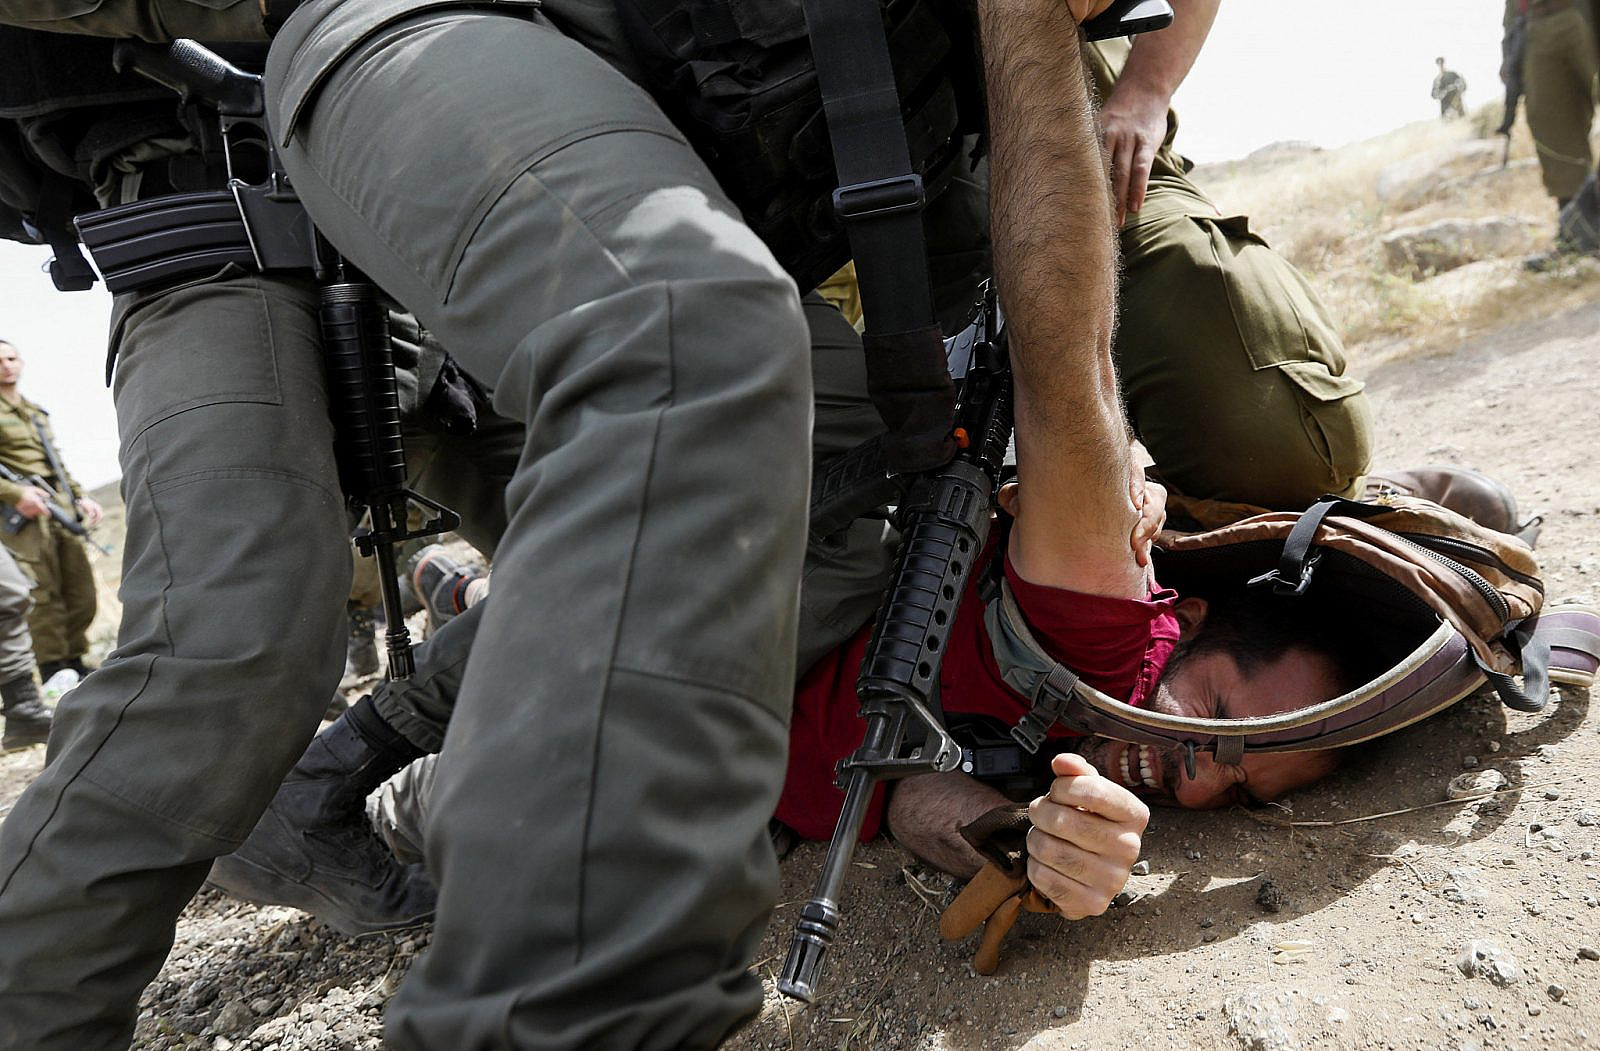 Israeli troops arrest activists during a protest against the demolition of Palestinian houses near the West Bank village of Yatta, south of Hebron, on May 3, 2019. (Wisam Hashlamoun/Flash90)